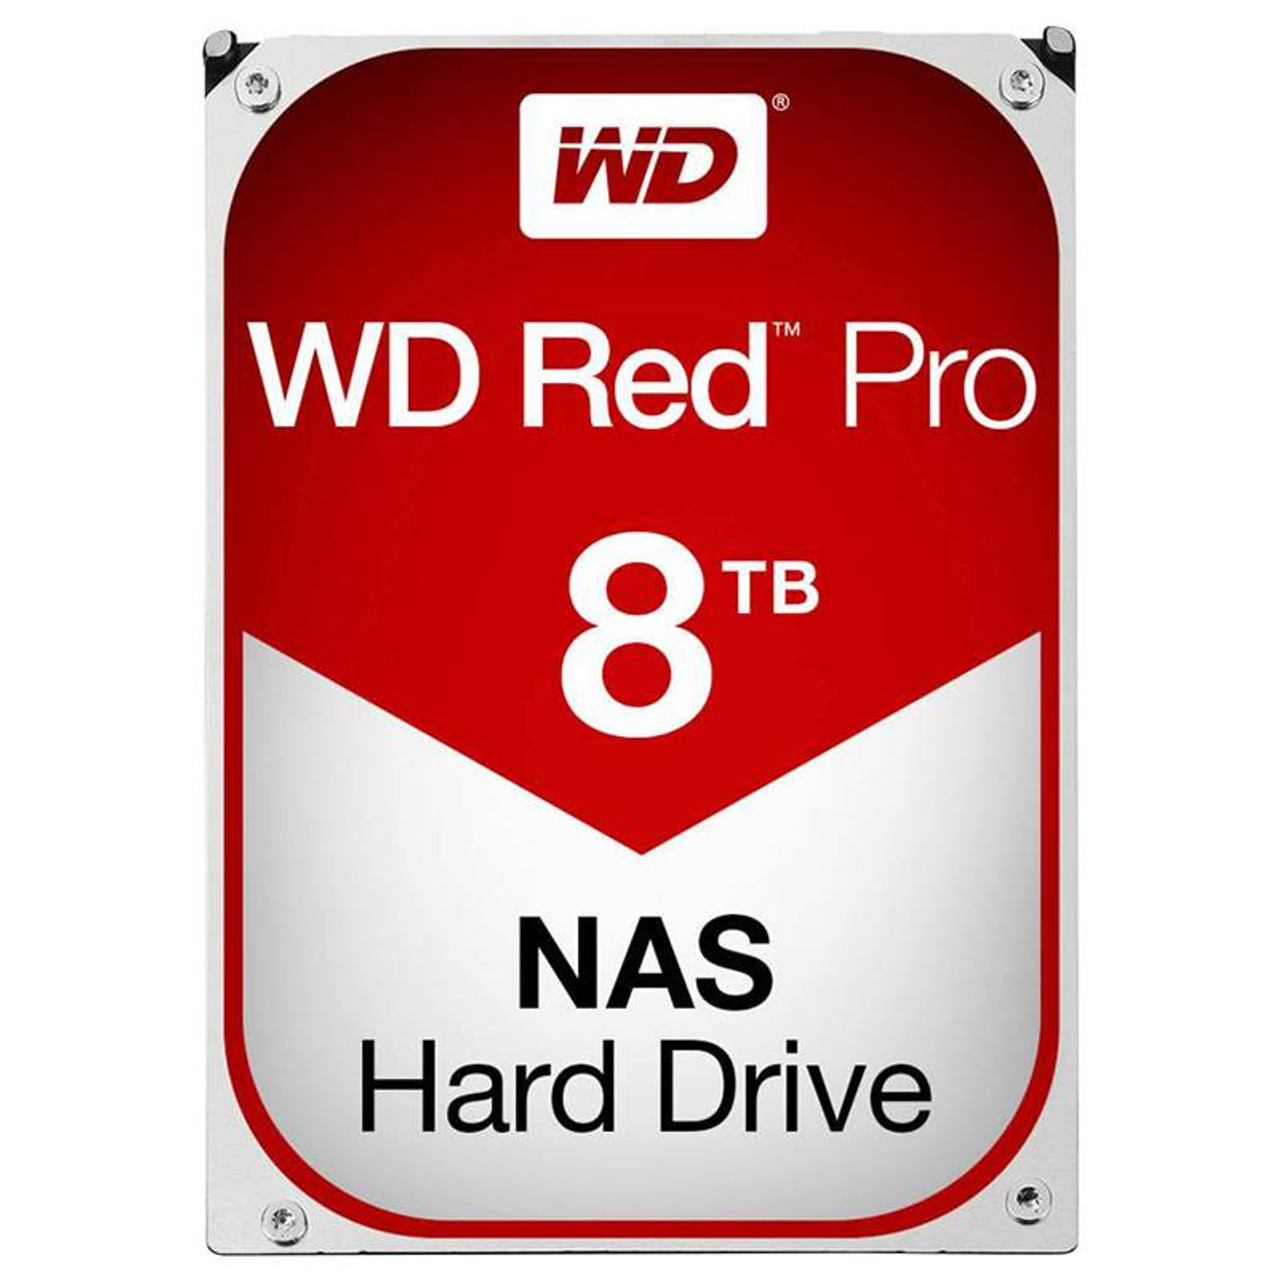 Product image for Western Digital WD Red Pro 8TB NAS | CX Computer Superstore